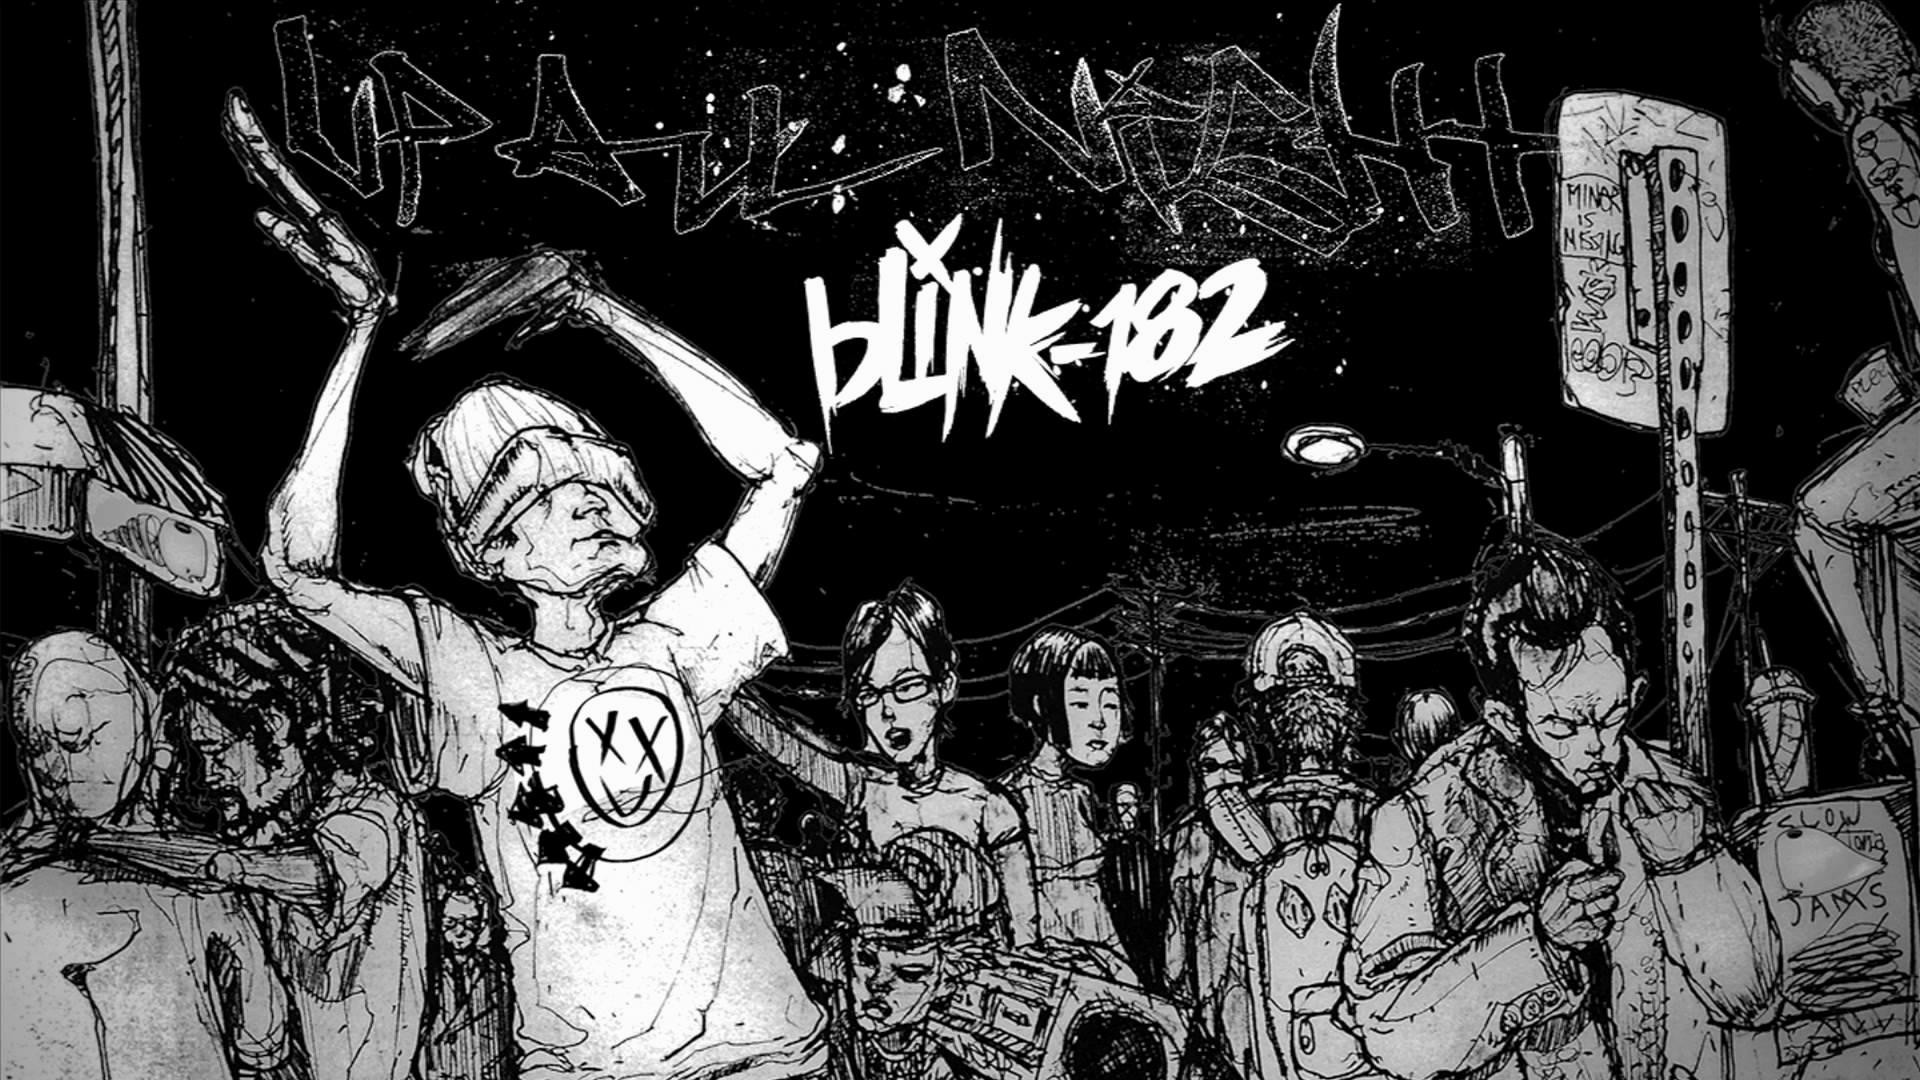 1920x1080 wallpaper.wiki-Blink-182-HD-Photos-PIC-WPE0011602